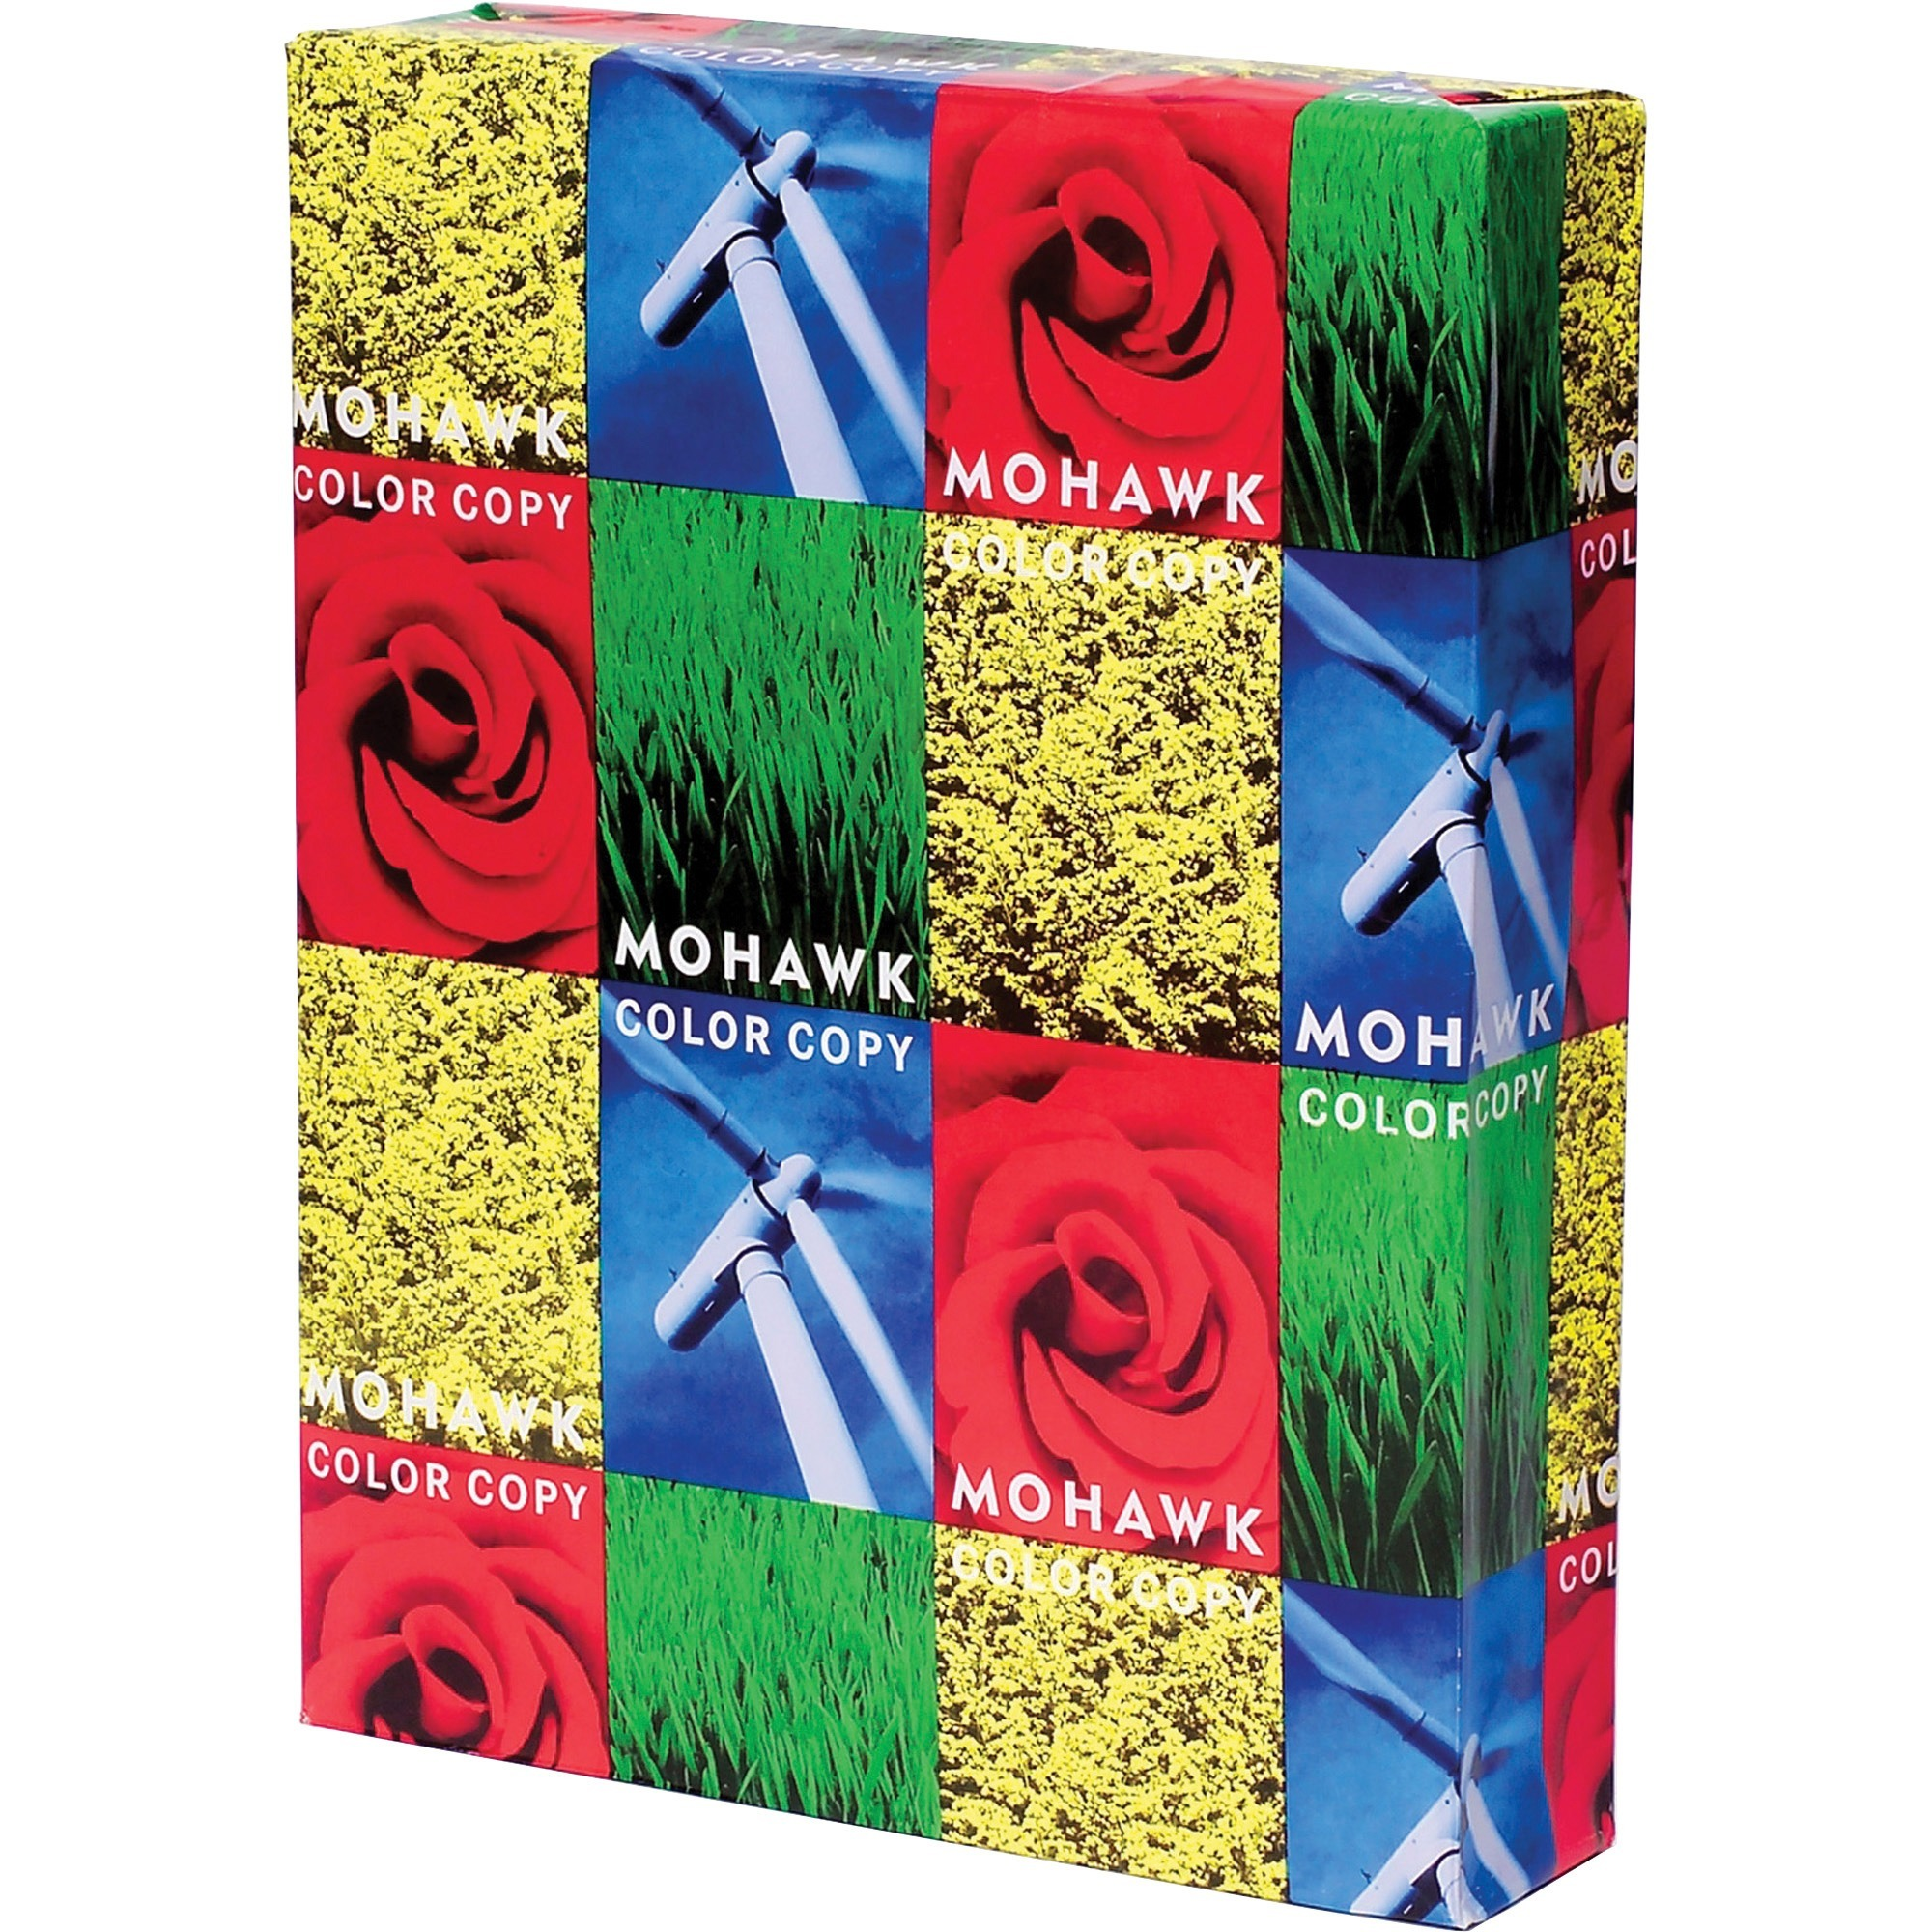 Mohawk Color Copy 100% Recycled Paper